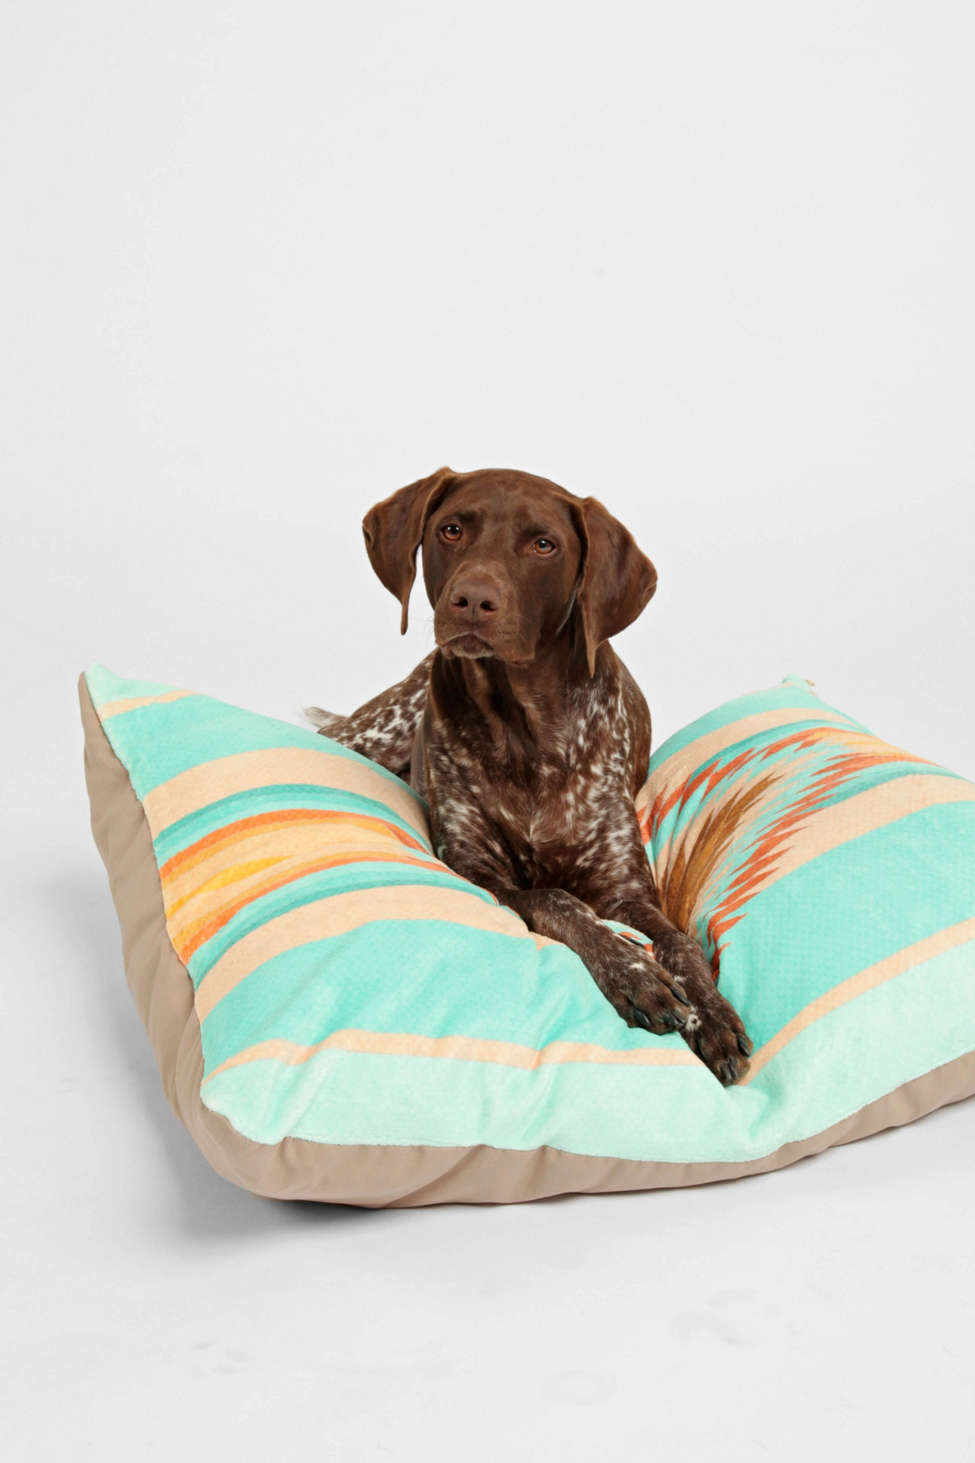 Slide View: 1: Bianca Green For Deny Fiesta Teal Pet Bed